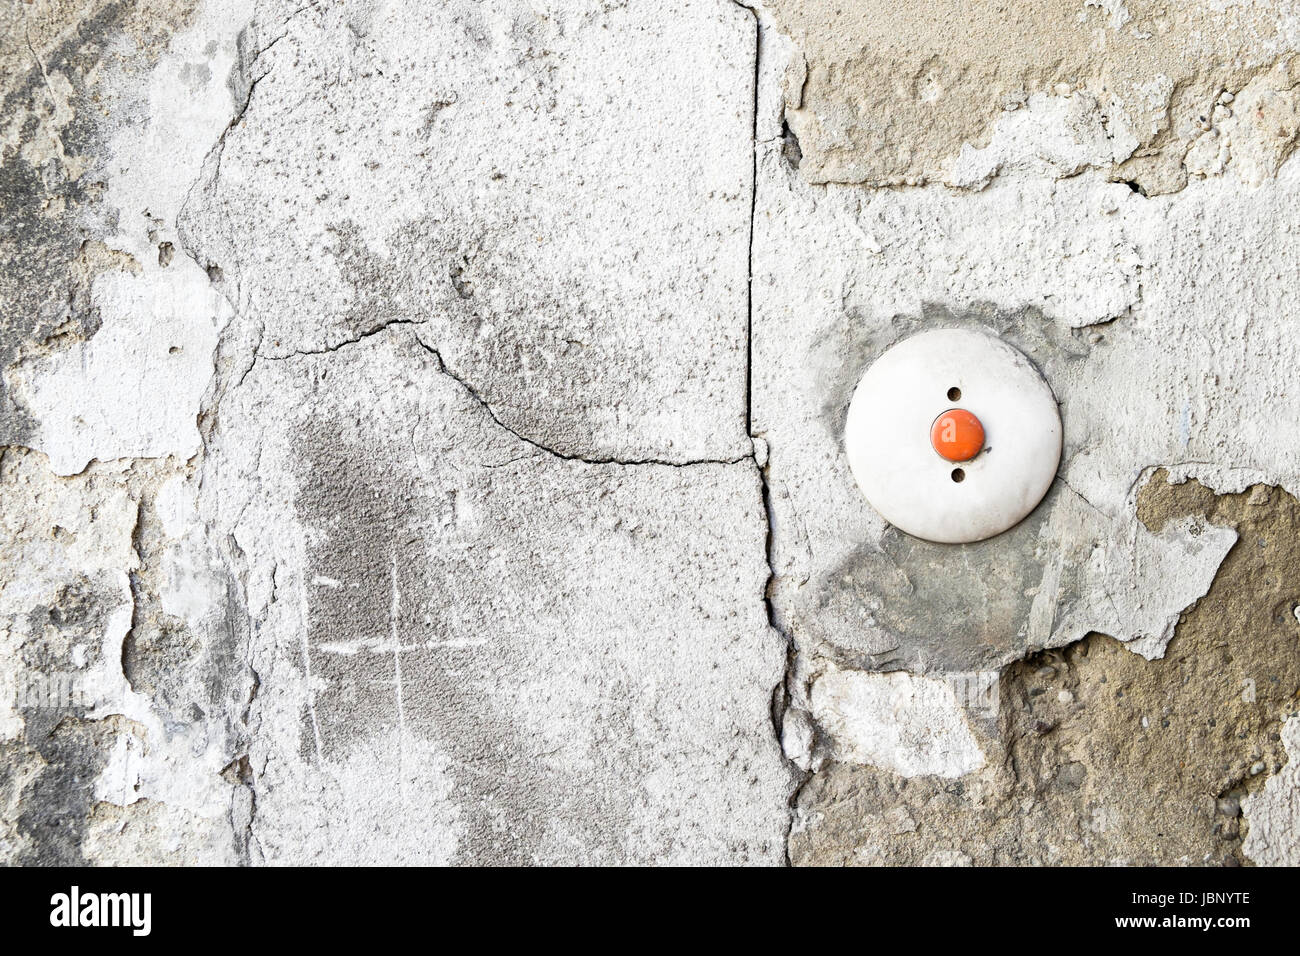 A retro red doorbell buzzer, surrounded by cracked concrete and flaking stucco in Vienna, Austria. - Stock Image